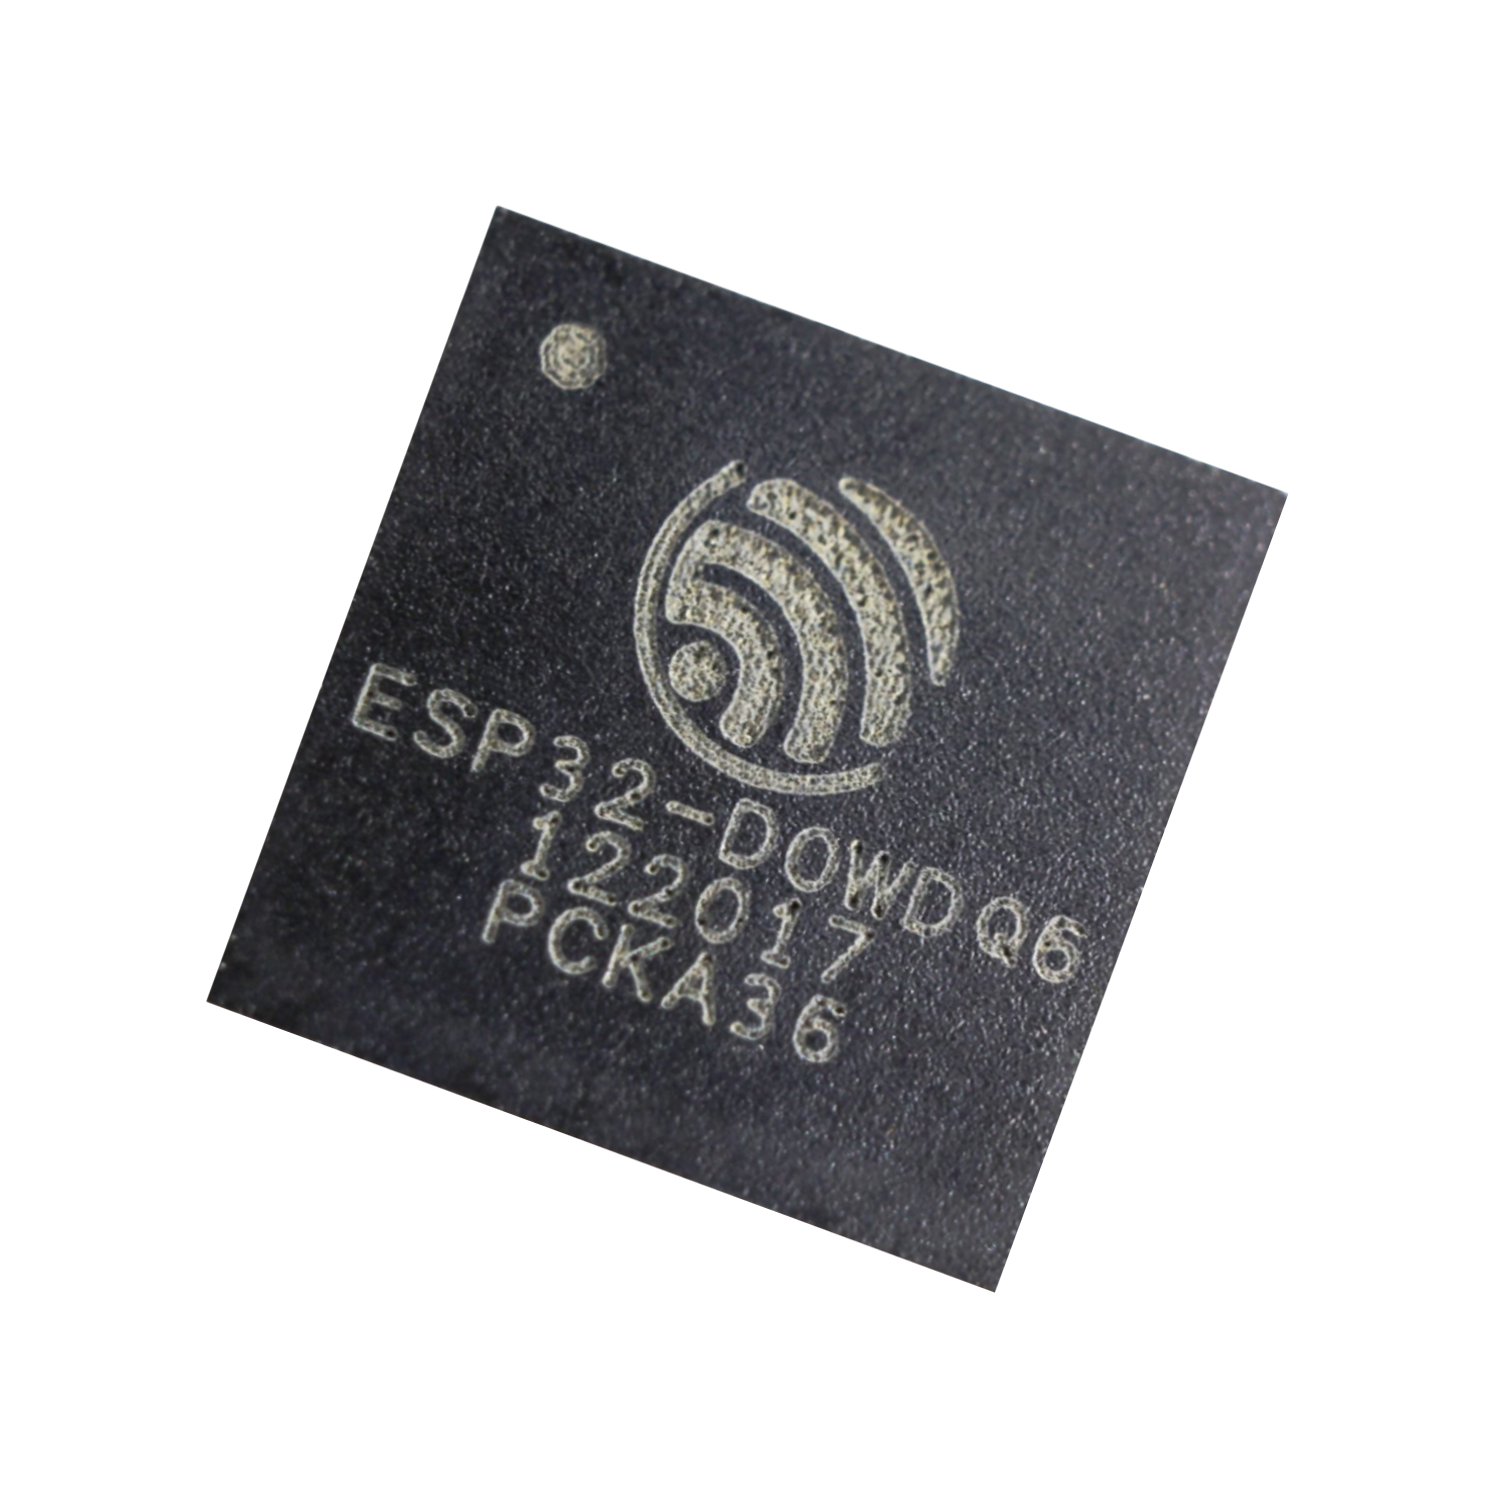 ESP32-D0WDQ6 - 2 4 GHz Wi-Fi & Bluetooth Combo Chip